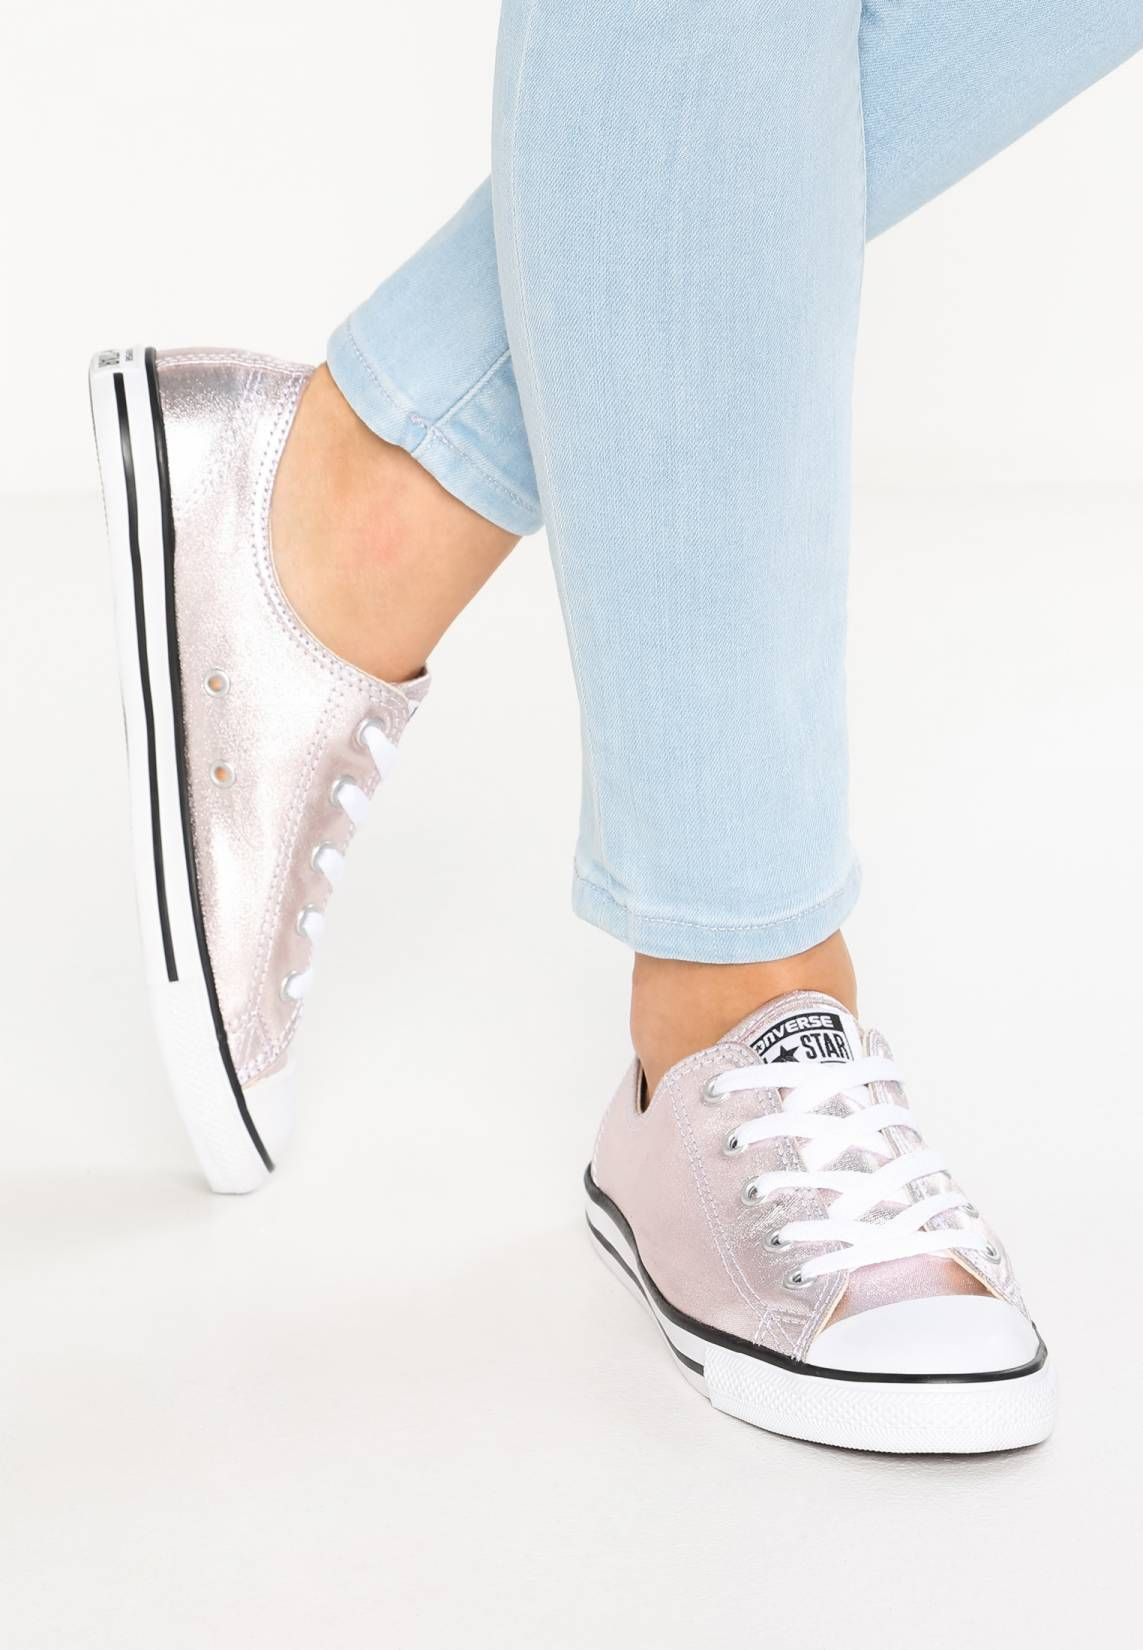 Converse Chuck Taylor All Star Dainty Metallic Low Top